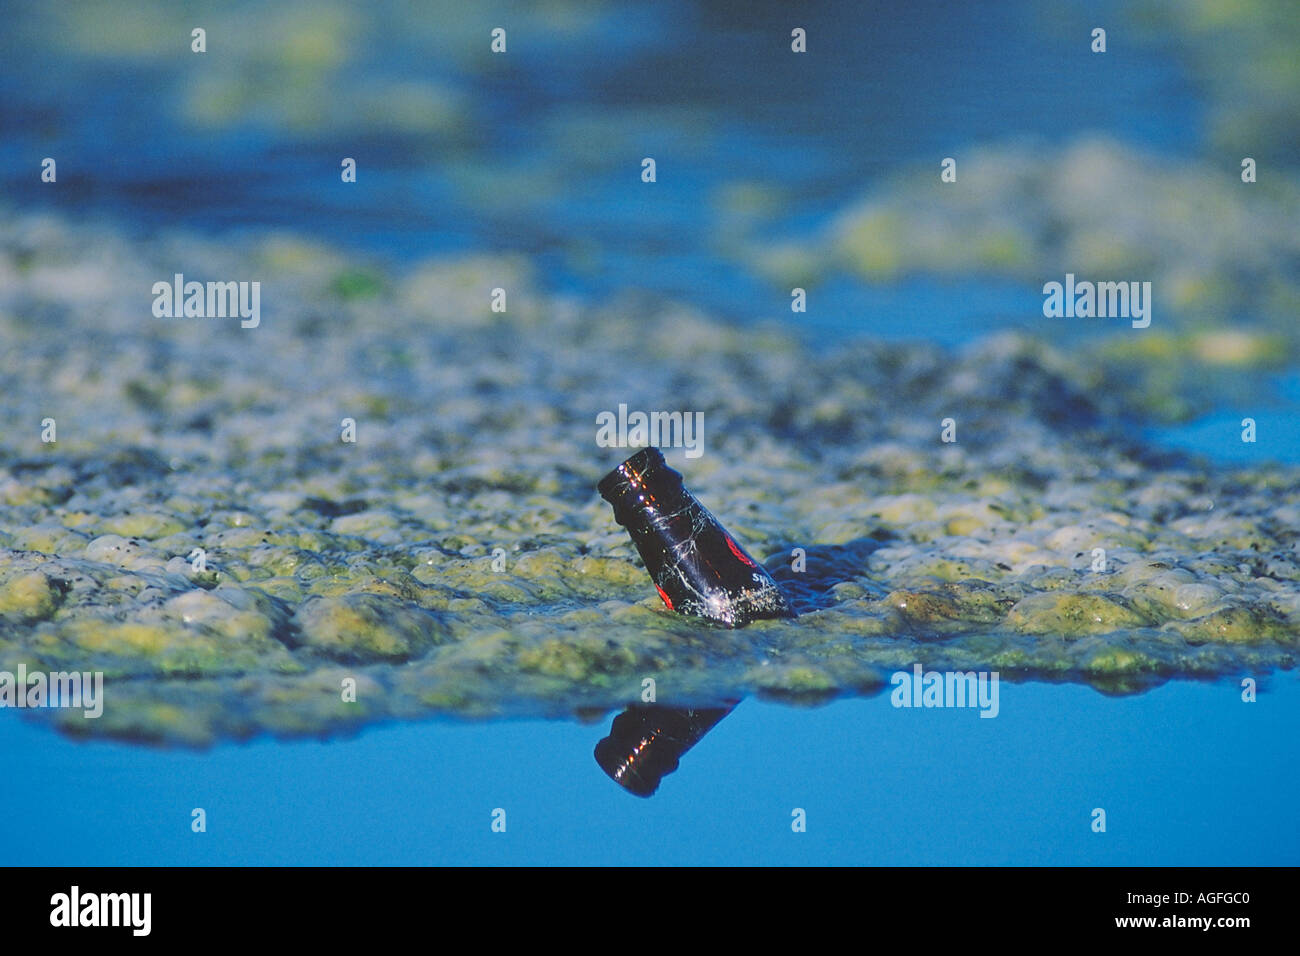 Beer bottle tossed in polluted lake - Stock Image